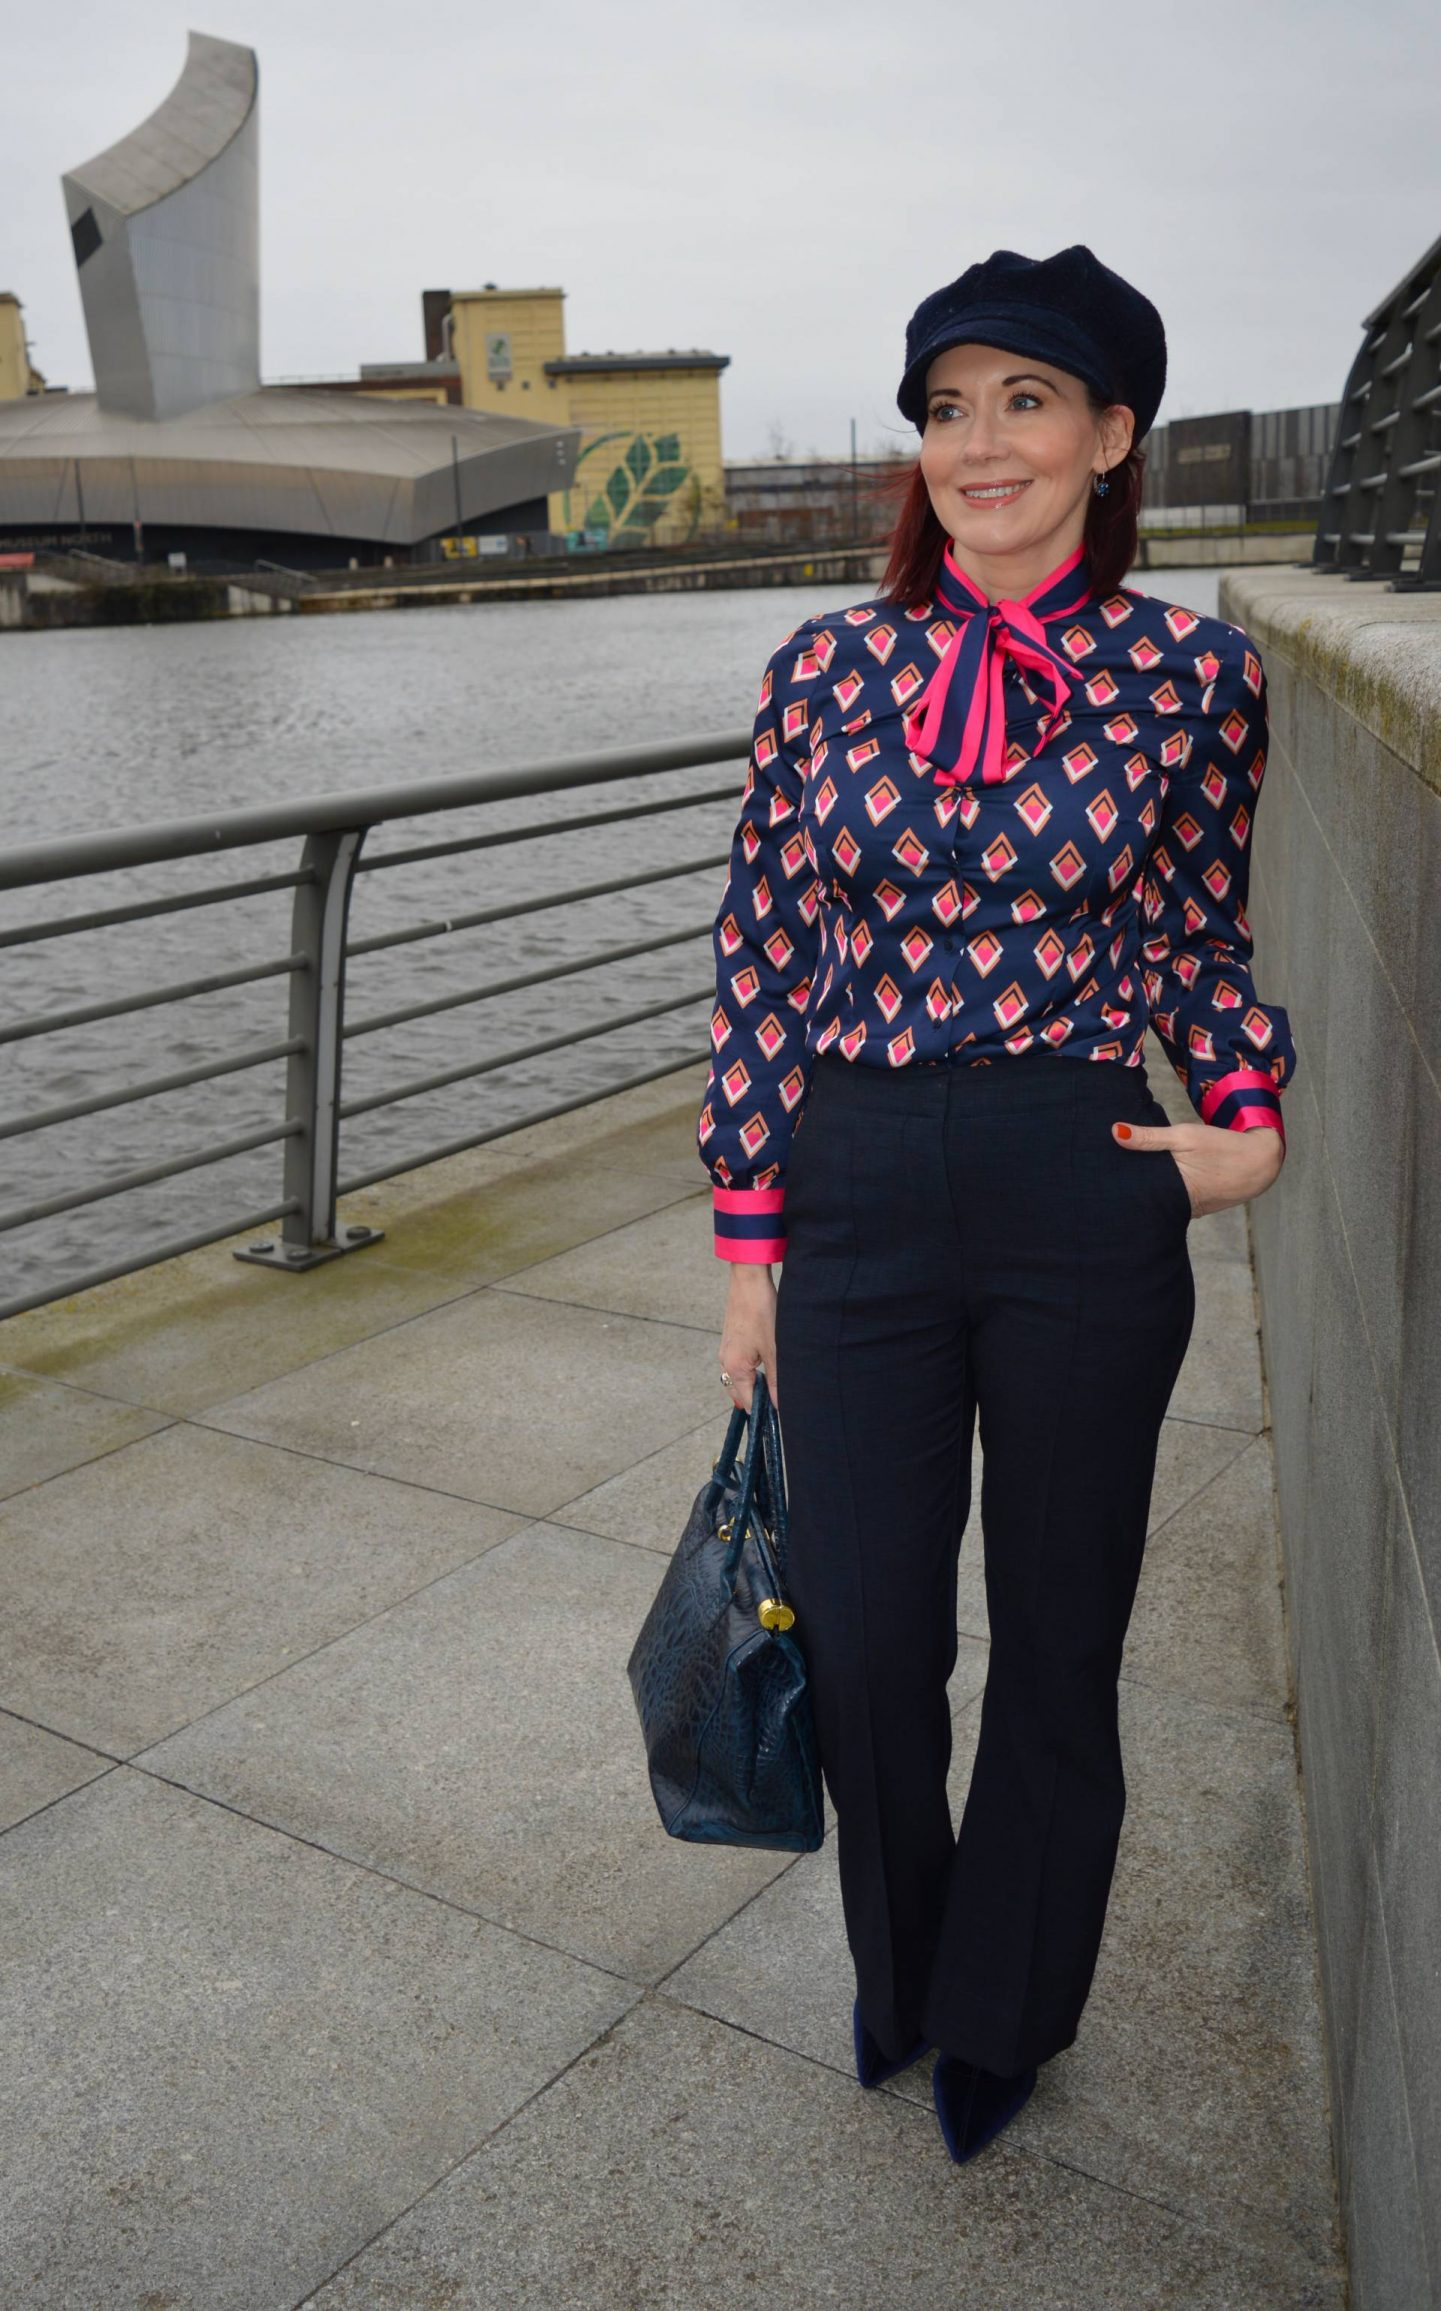 Hawes & Curtis navy and pink pussy bow blouse